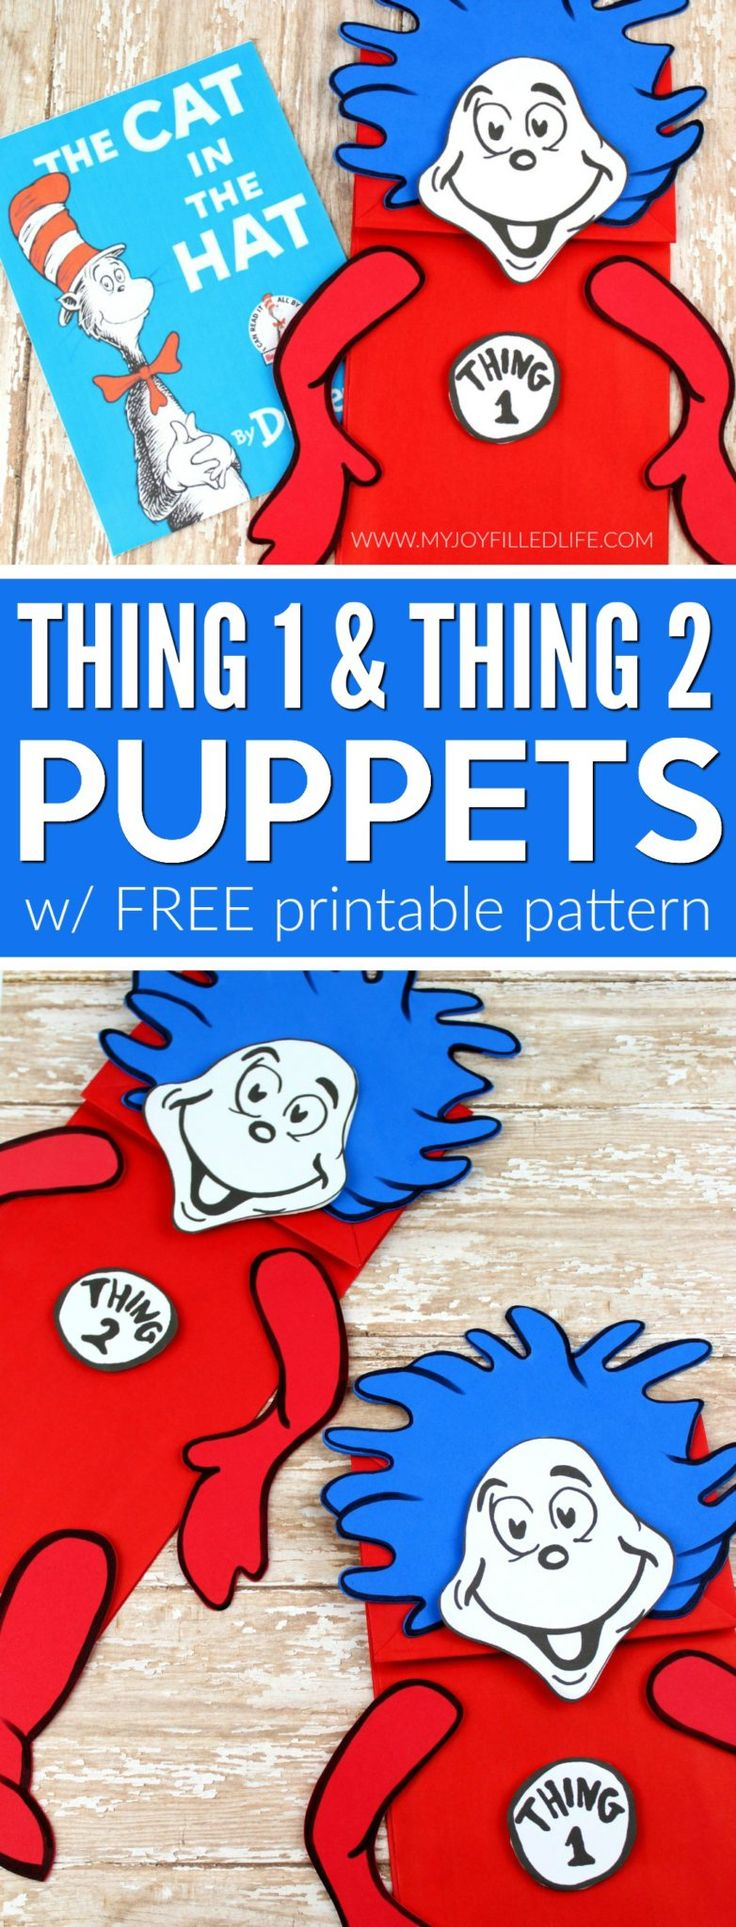 Make your next reading of The Cat and the Hat more fun and memorable with these cute Thing 1 & Thing 2 puppets!  #drseuss #kidcrafts #storytime